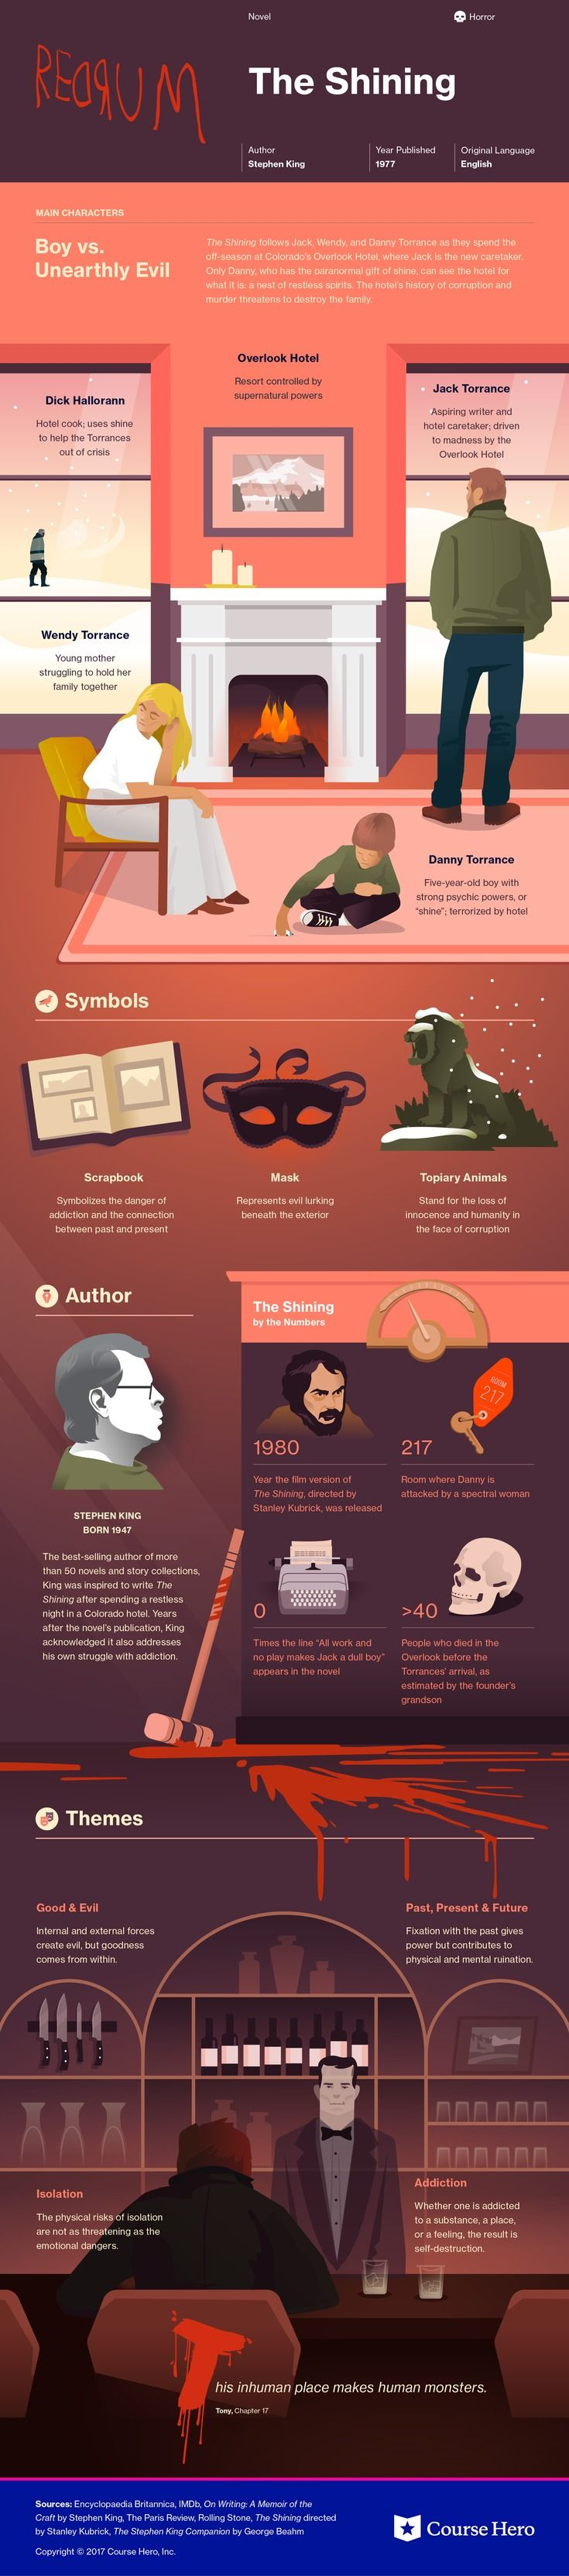 This @CourseHero infographic on The Shining is both visually stunning and informative!